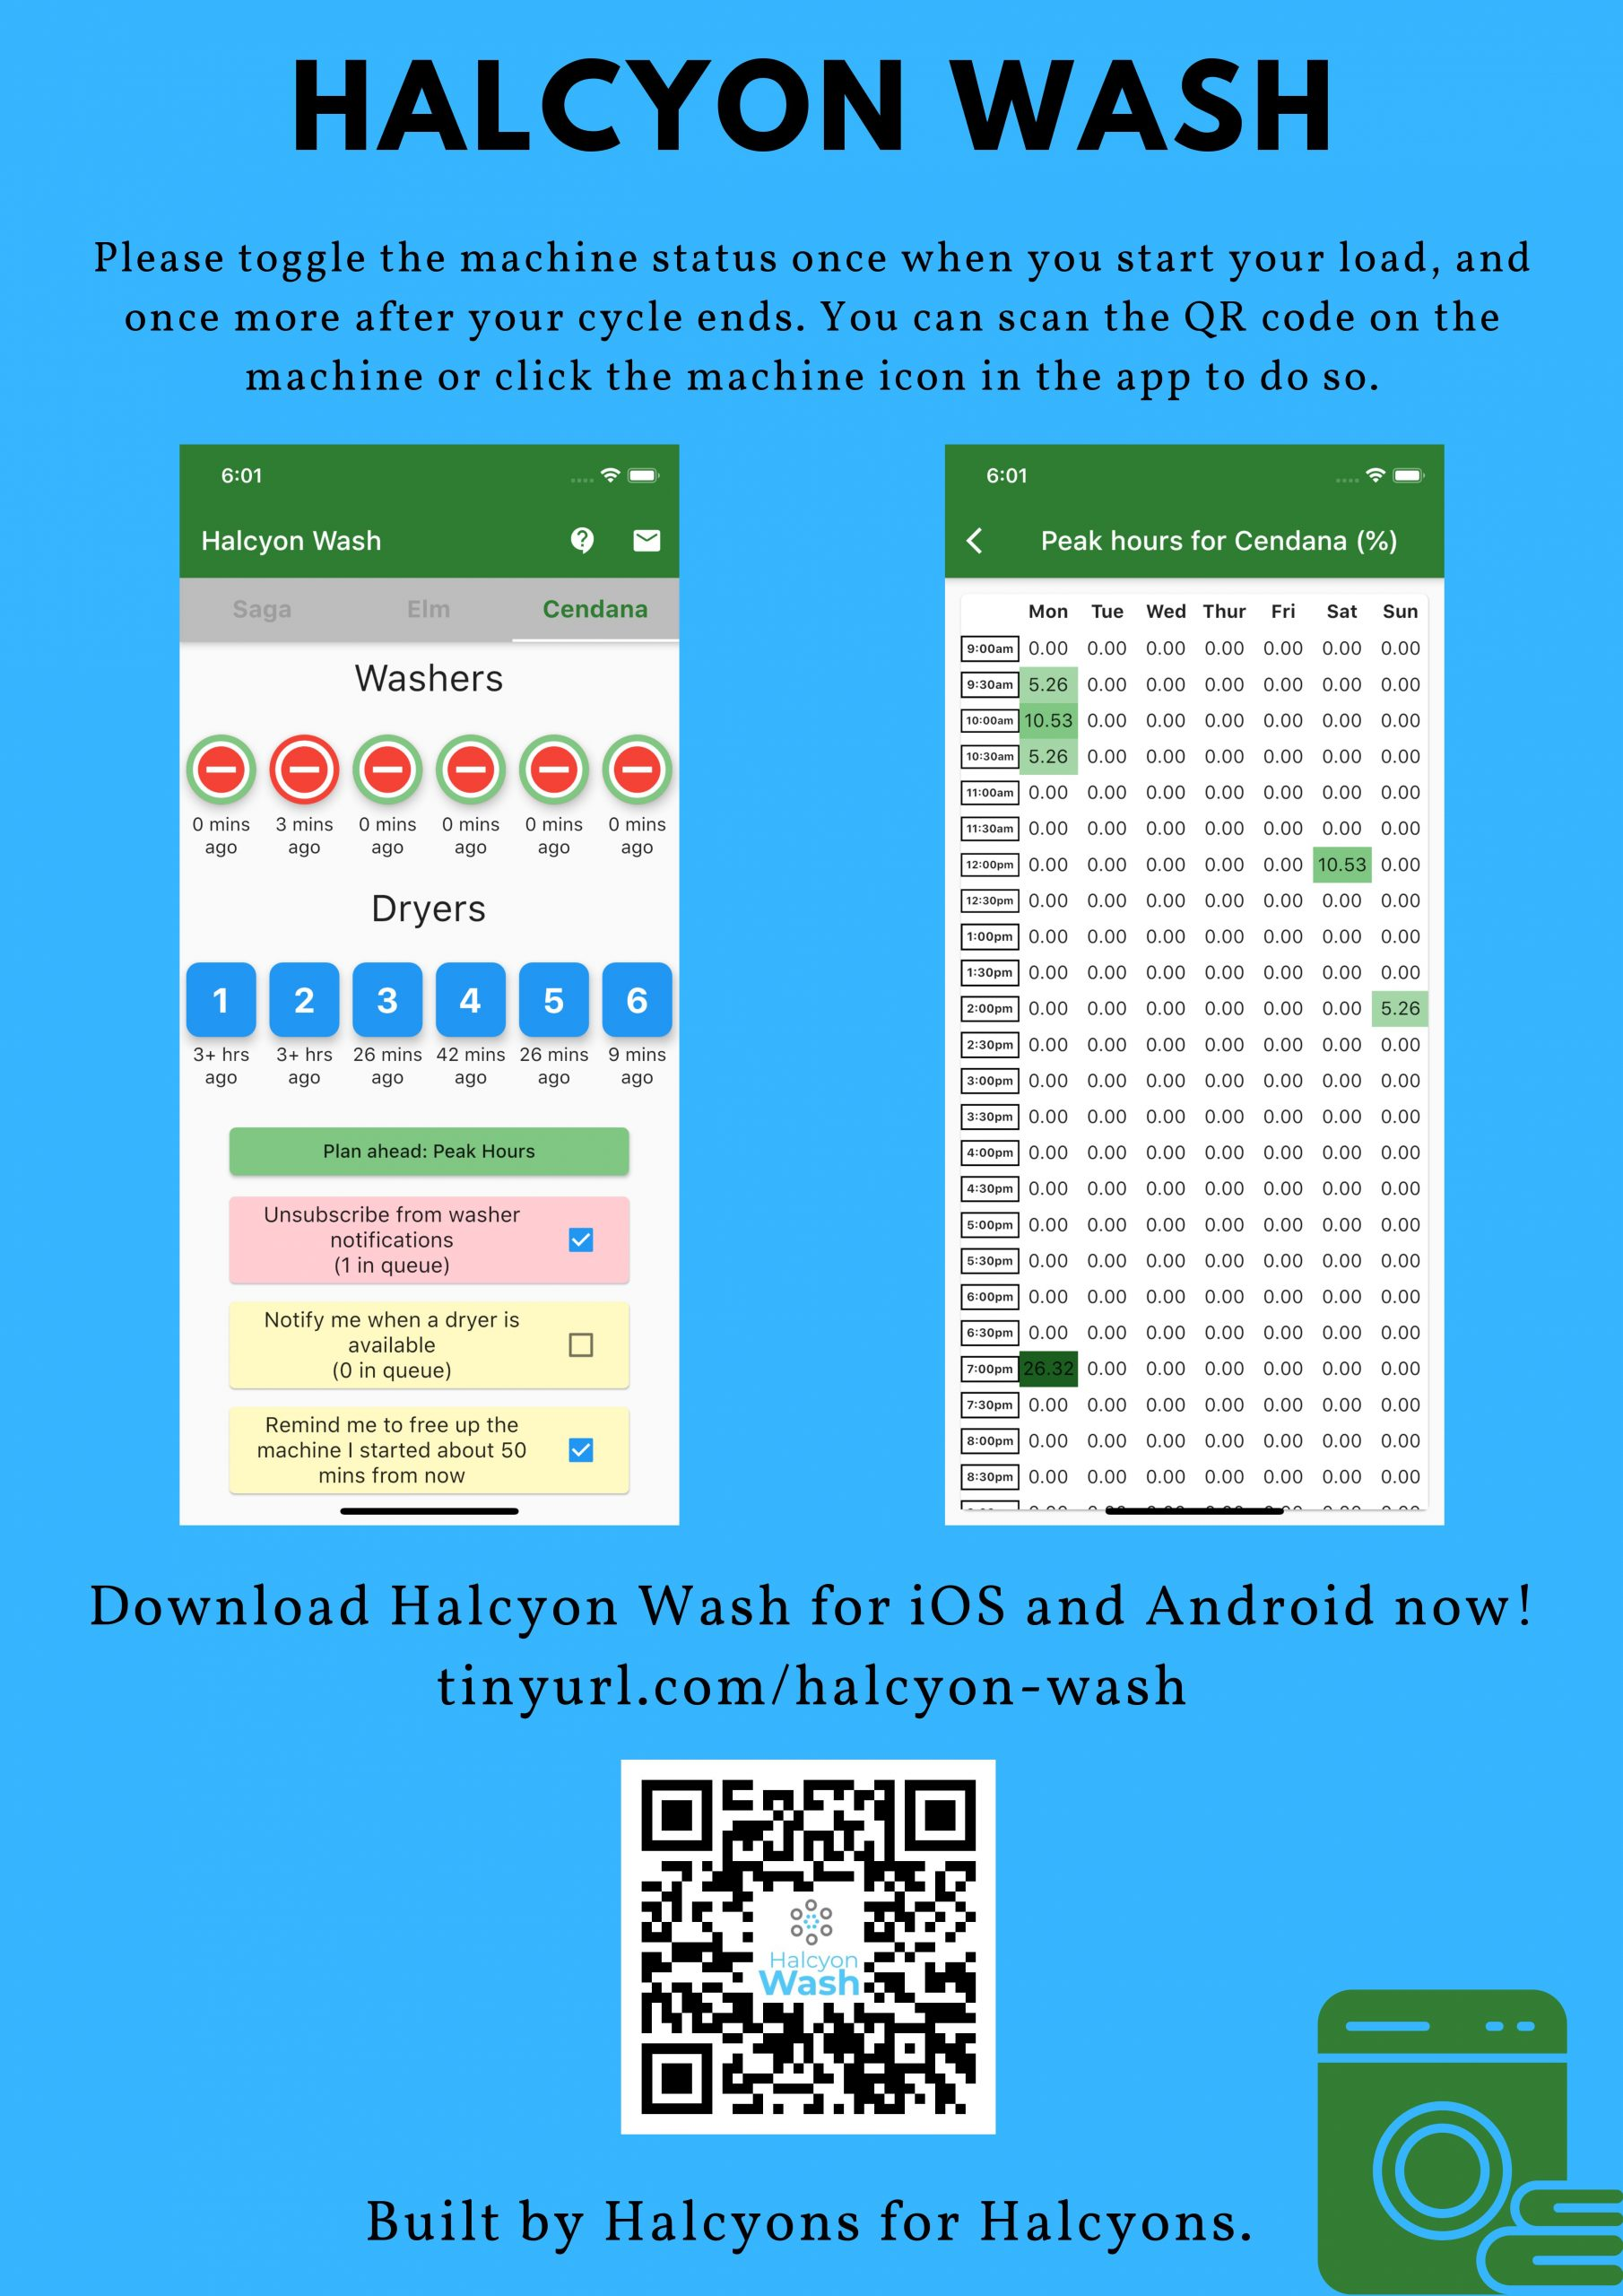 Halcyon Wash Mobile Application